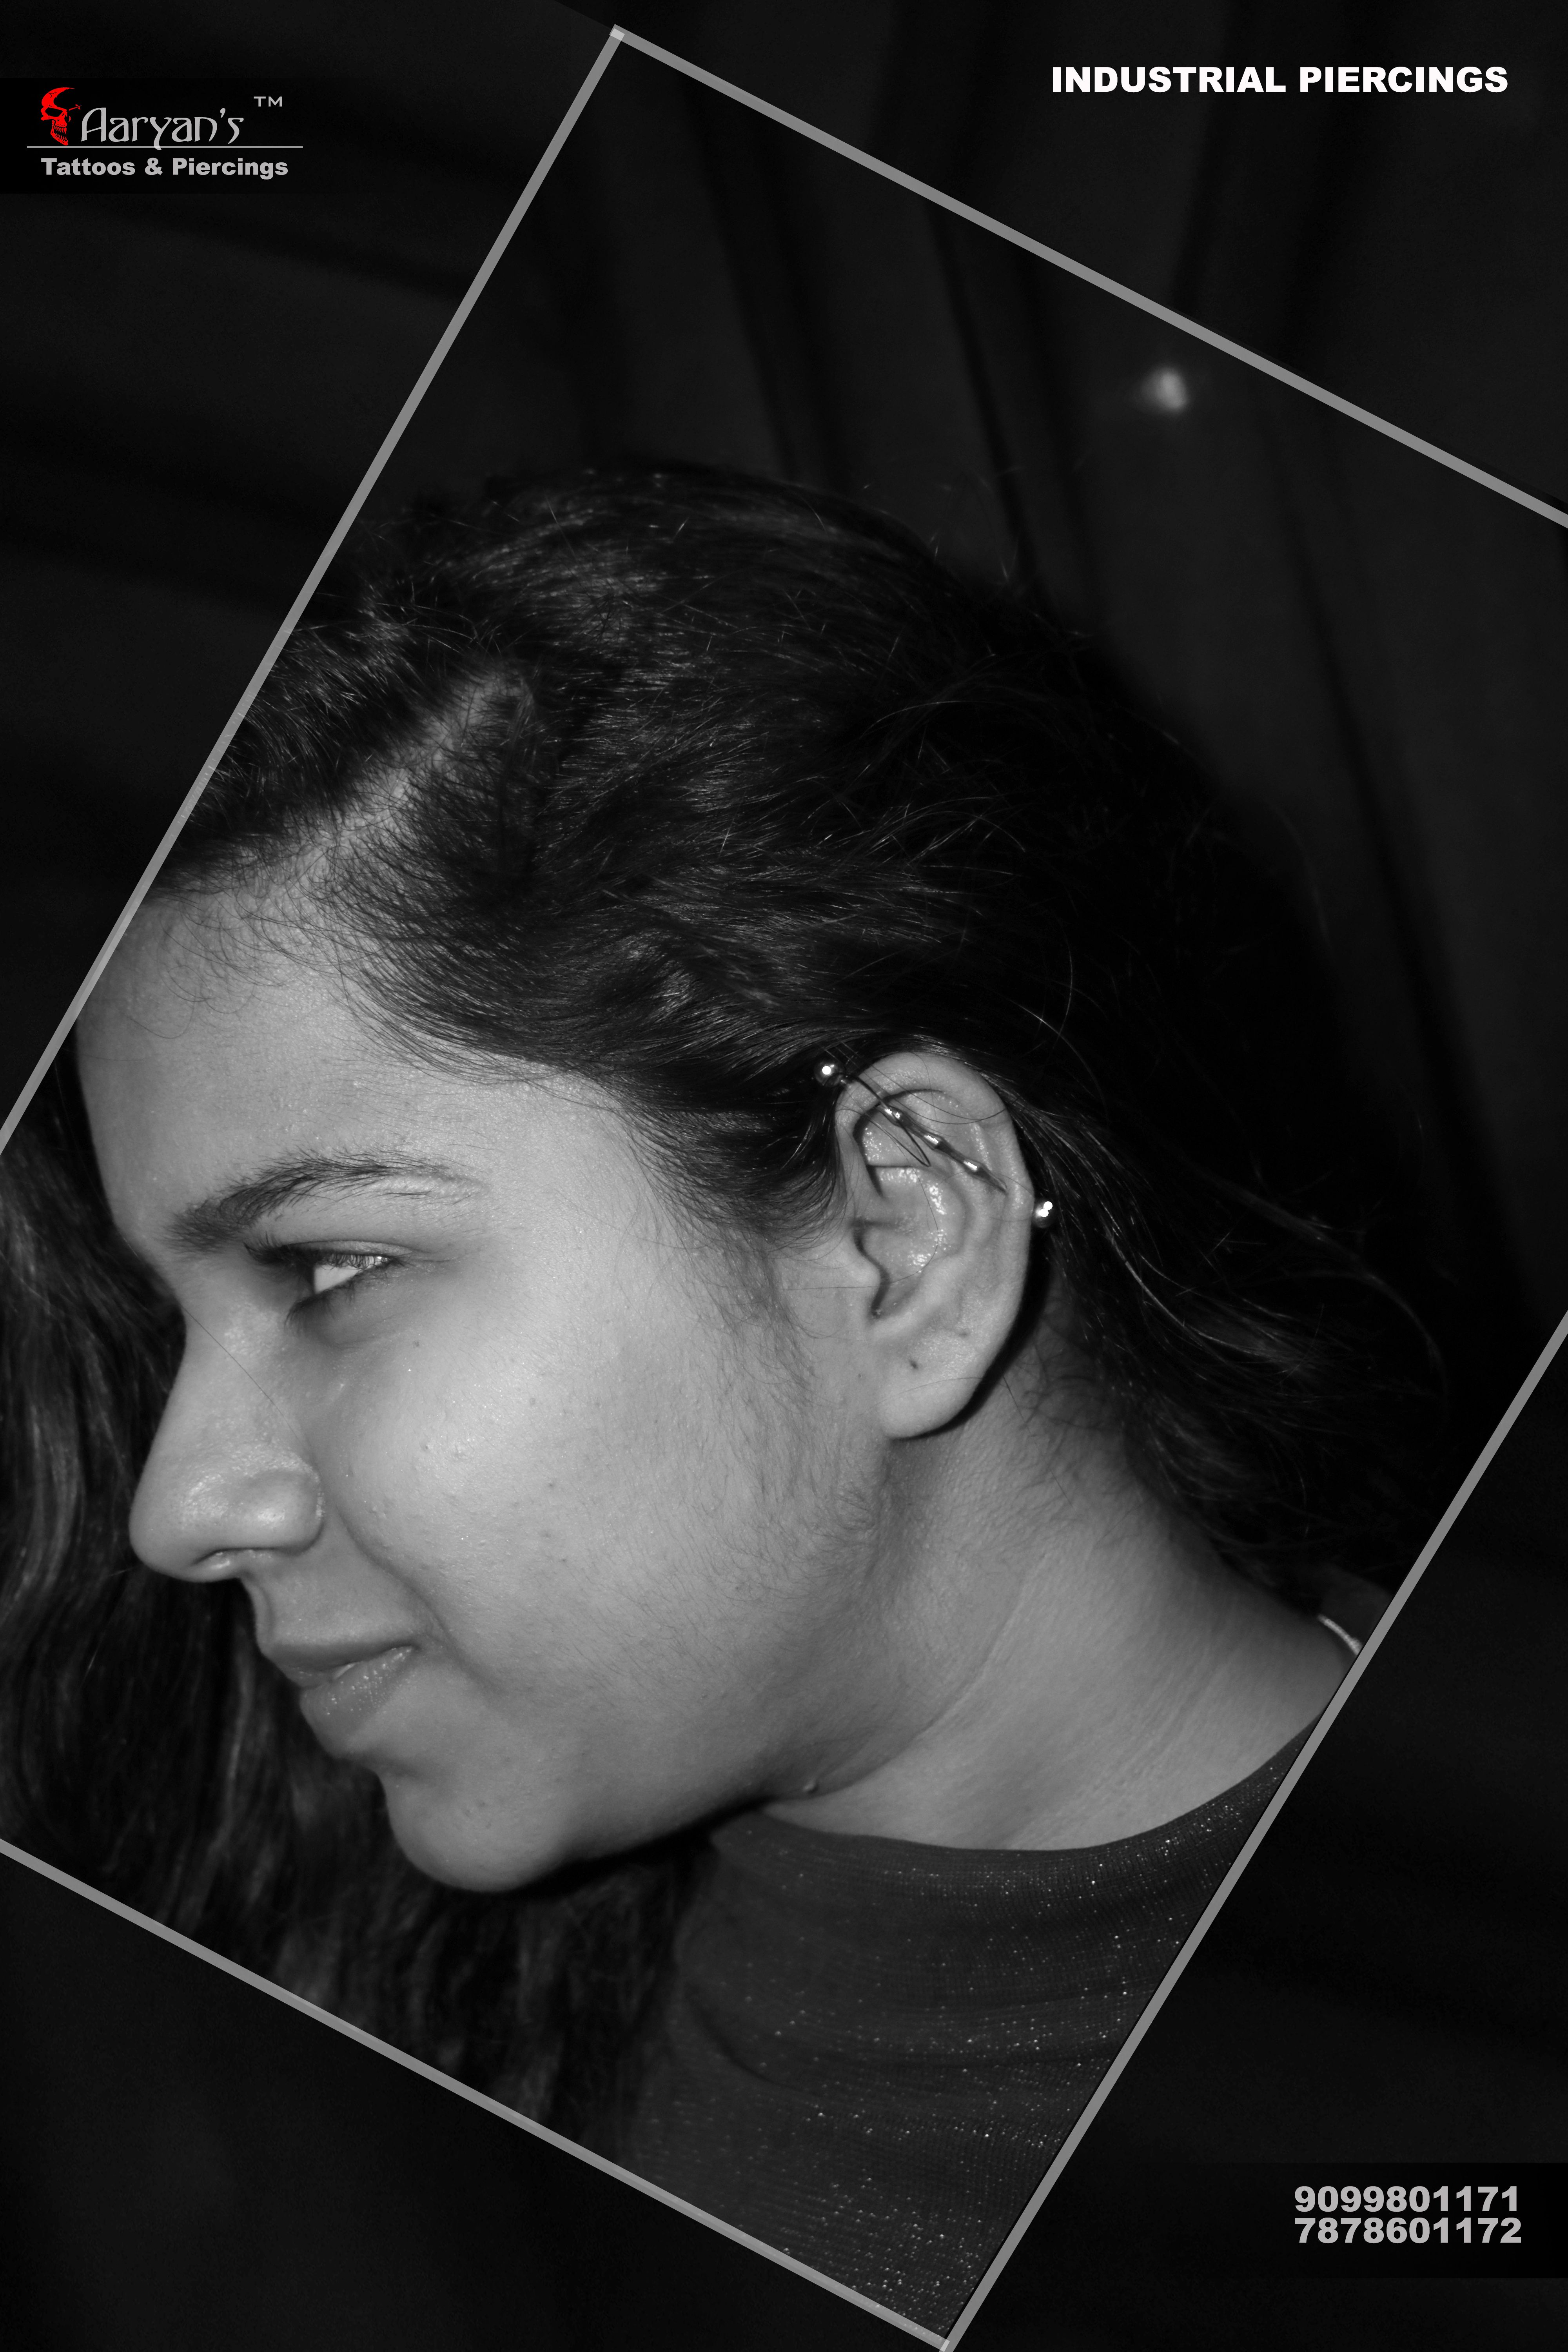 Industrial Piercing Just Get It Done Its Best Style So Far Call